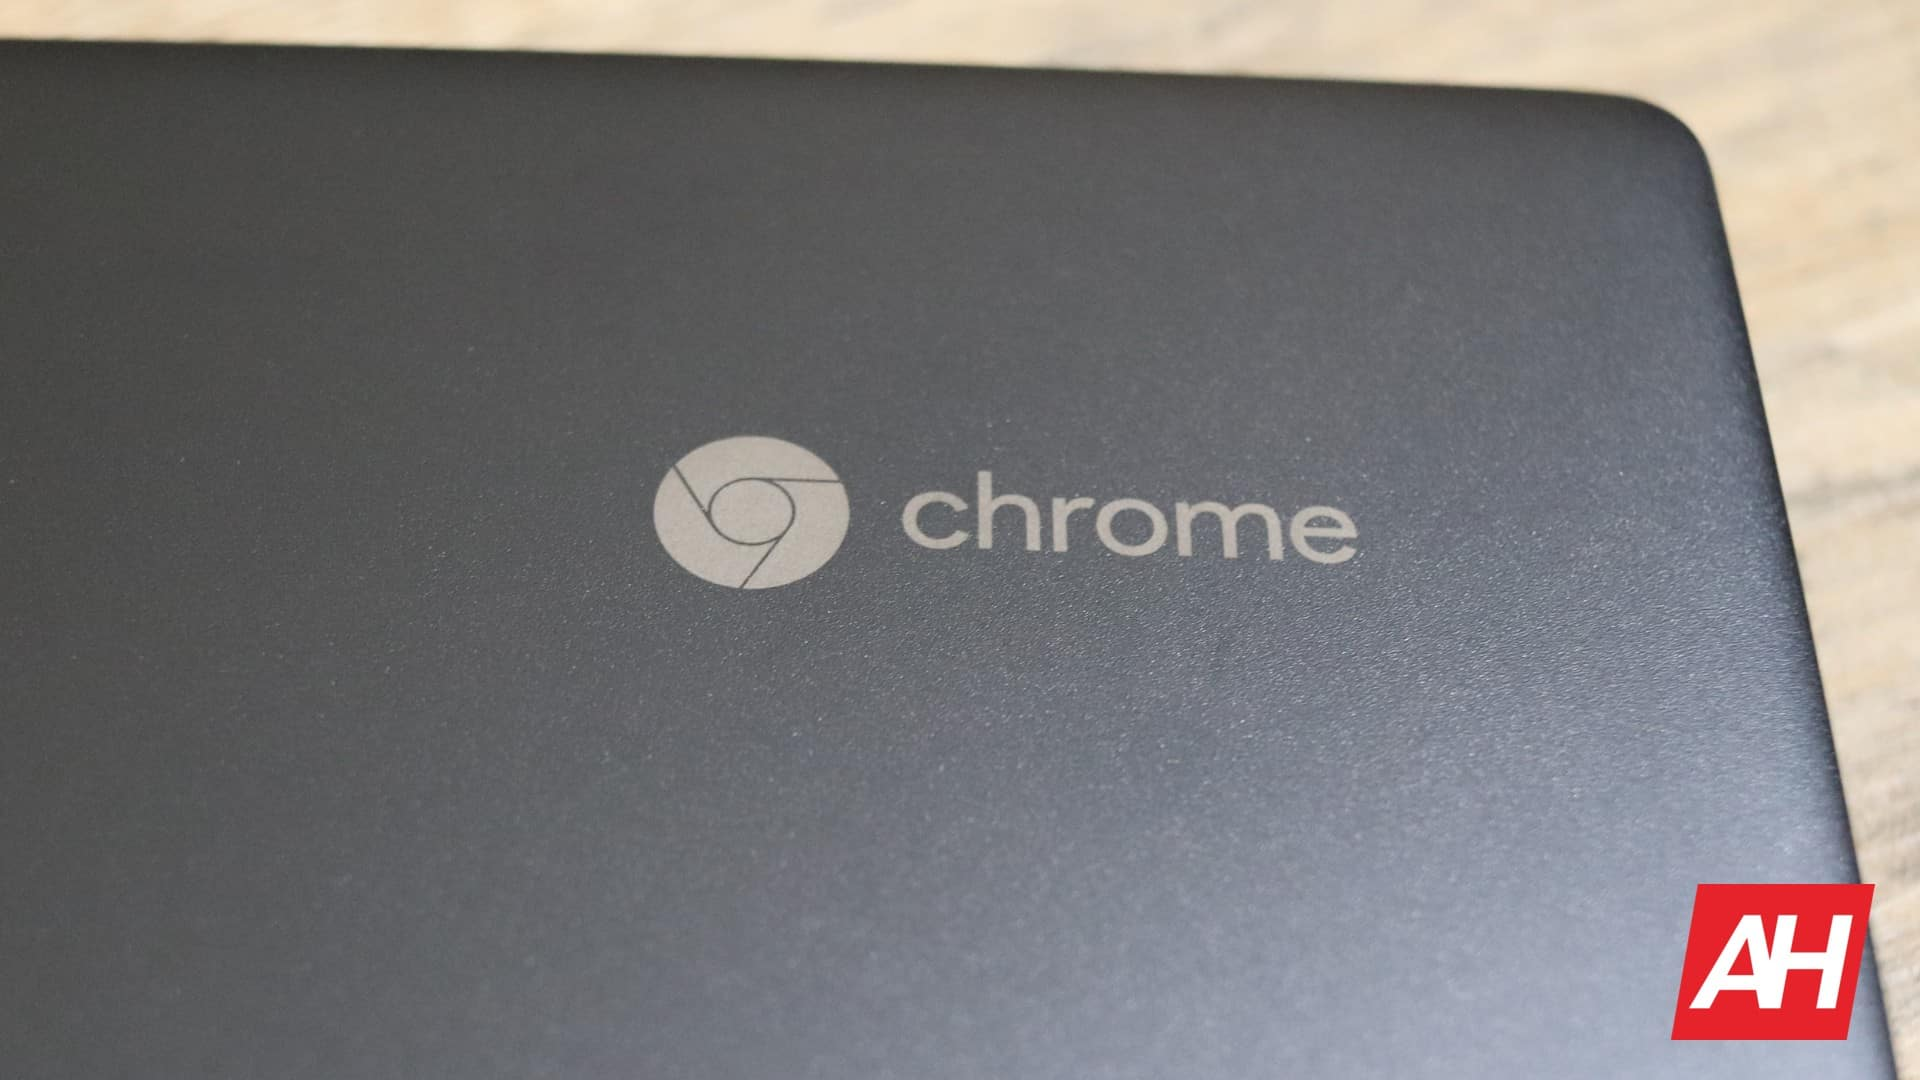 Lenovo Yoga Chromebook C630 Review Hardware AH 02